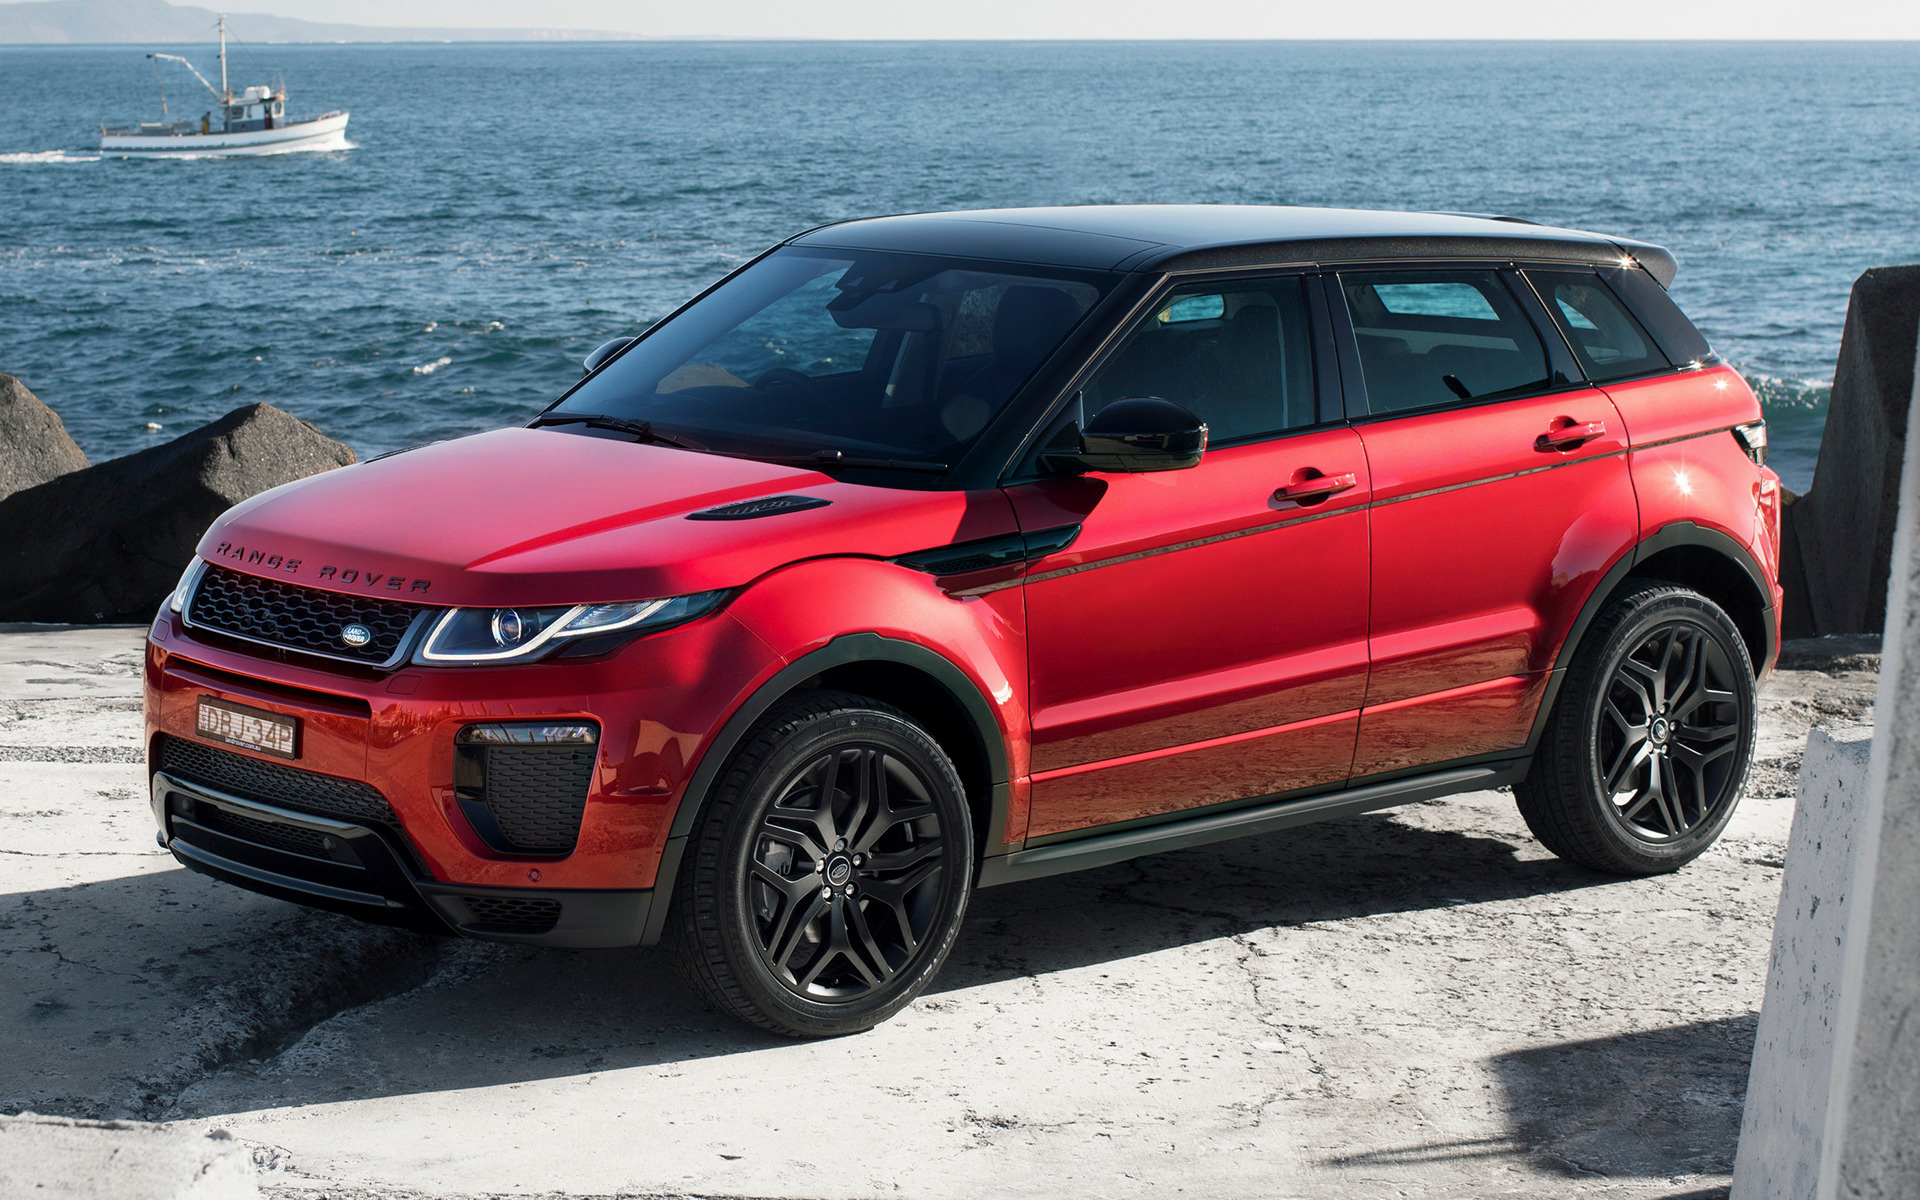 Land Rover Evoque >> 2015 Range Rover Evoque HSE Dynamic (AU) - Wallpapers and ...